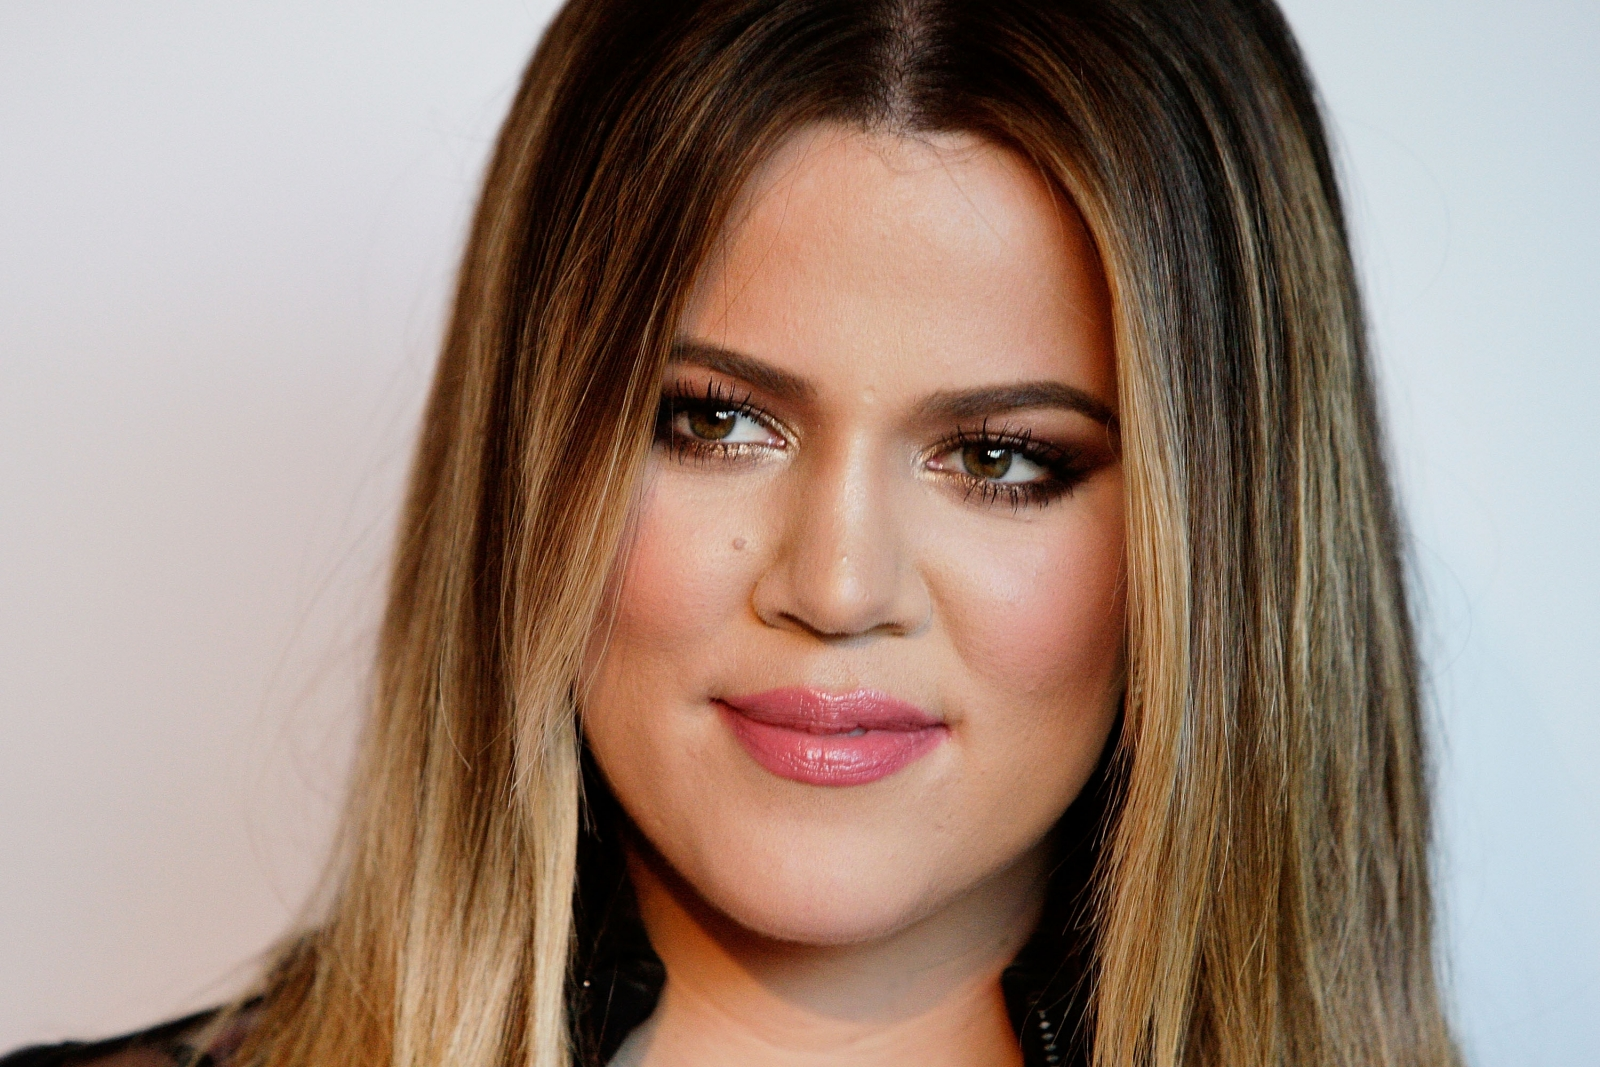 OJ Simpson to take paternity test for Khloe Kardashian